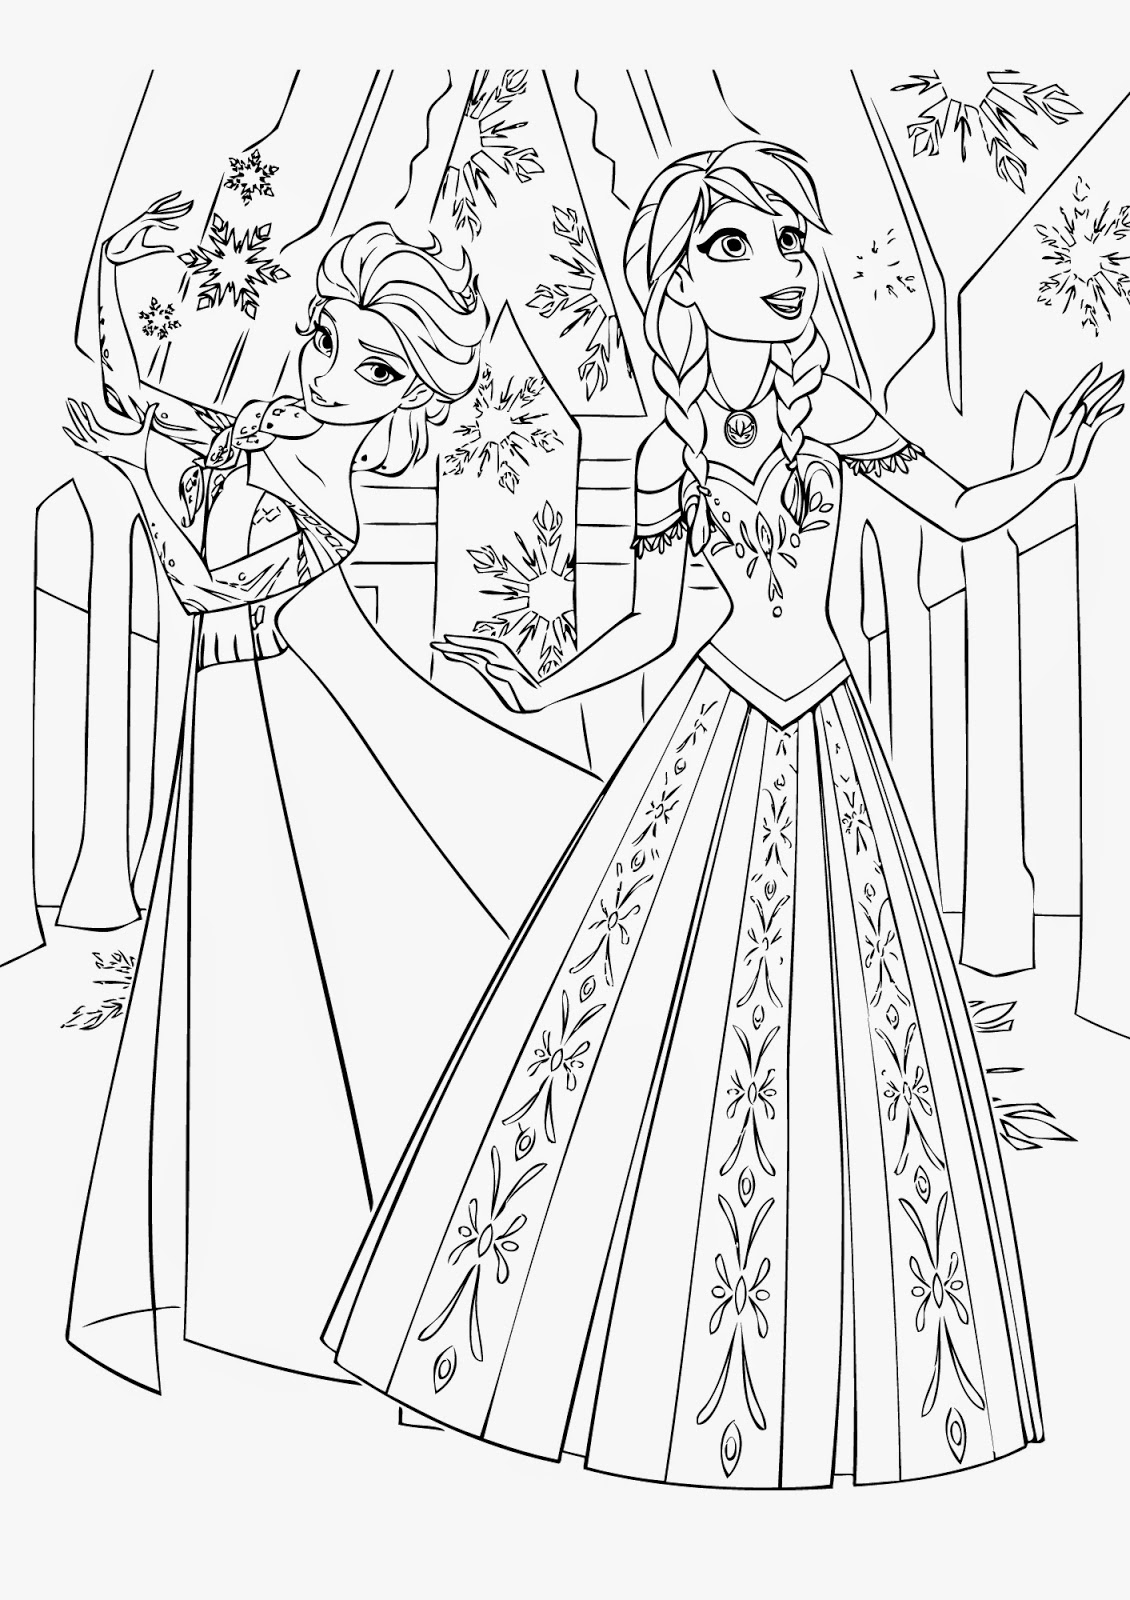 coloring pictures of frozen characters find 16 awesome frozen coloring pages to print instant frozen characters pictures coloring of